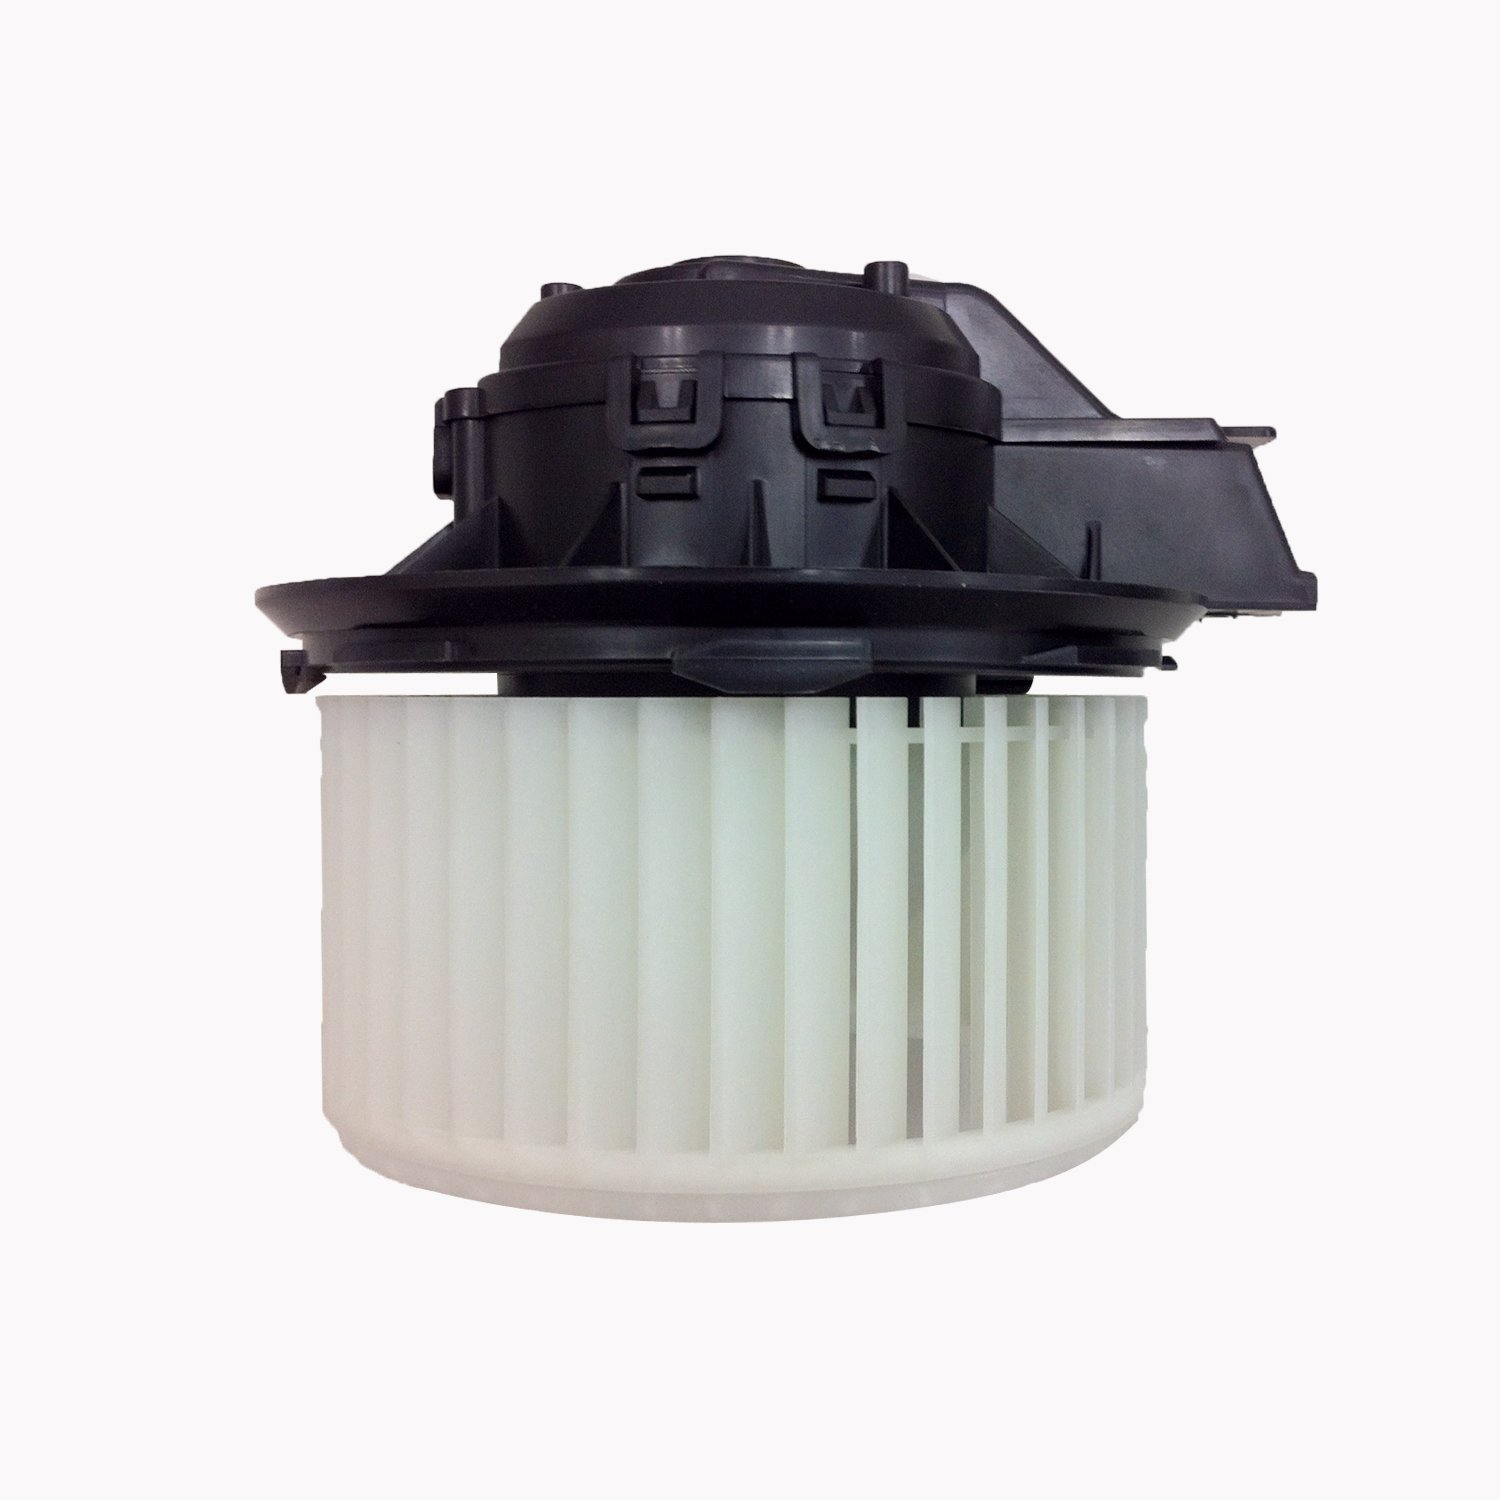 TYC 700274 Replacement Blower Assembly